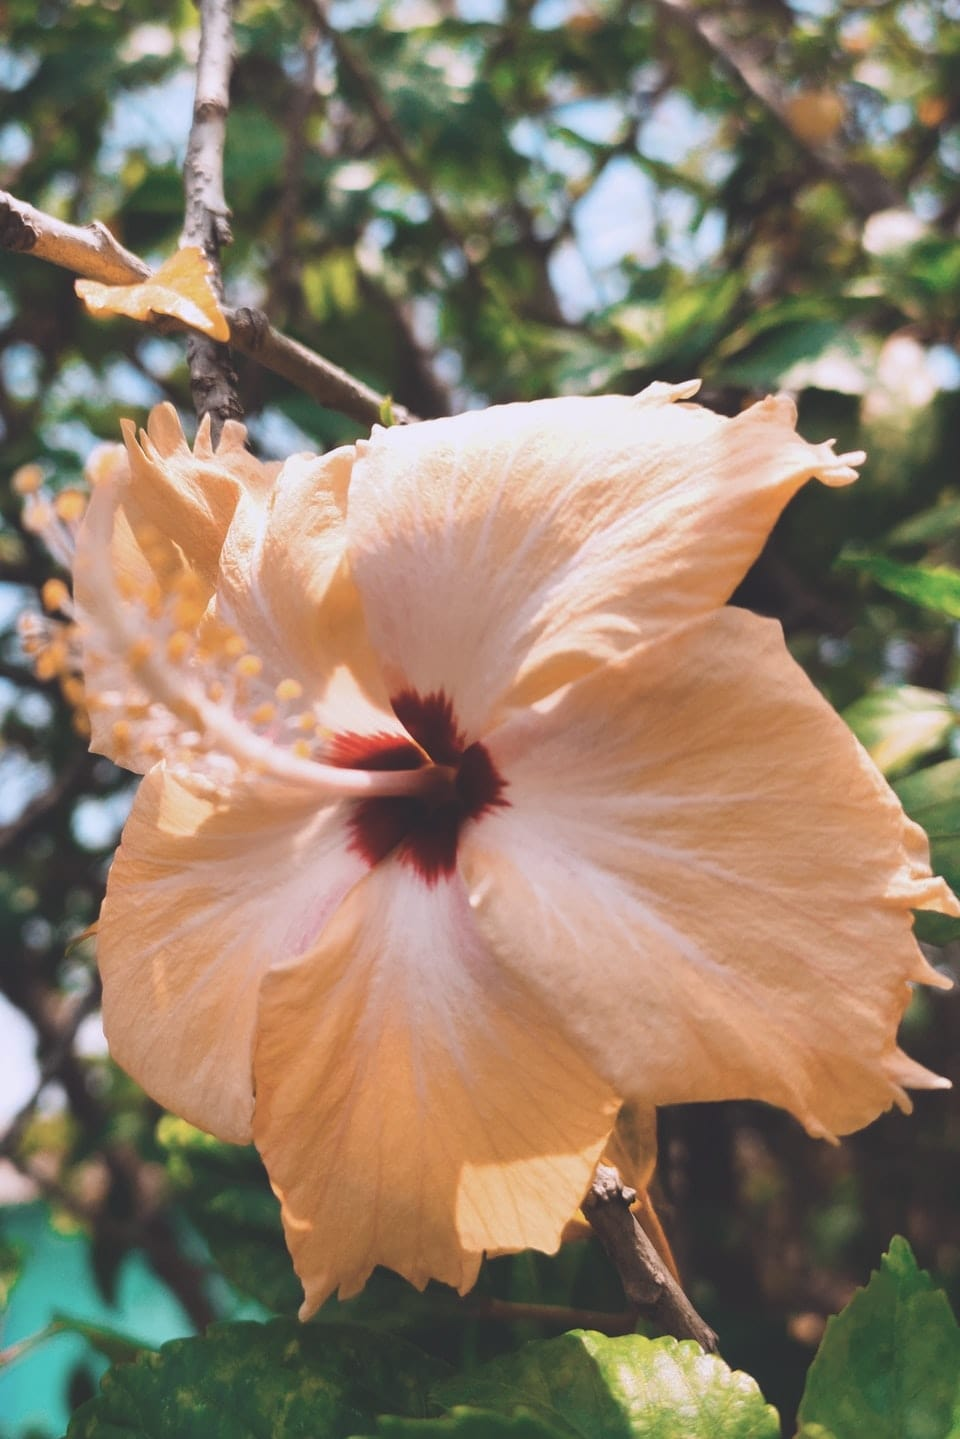 A yellow hibiscus flower that can be used for various medicinal purposes